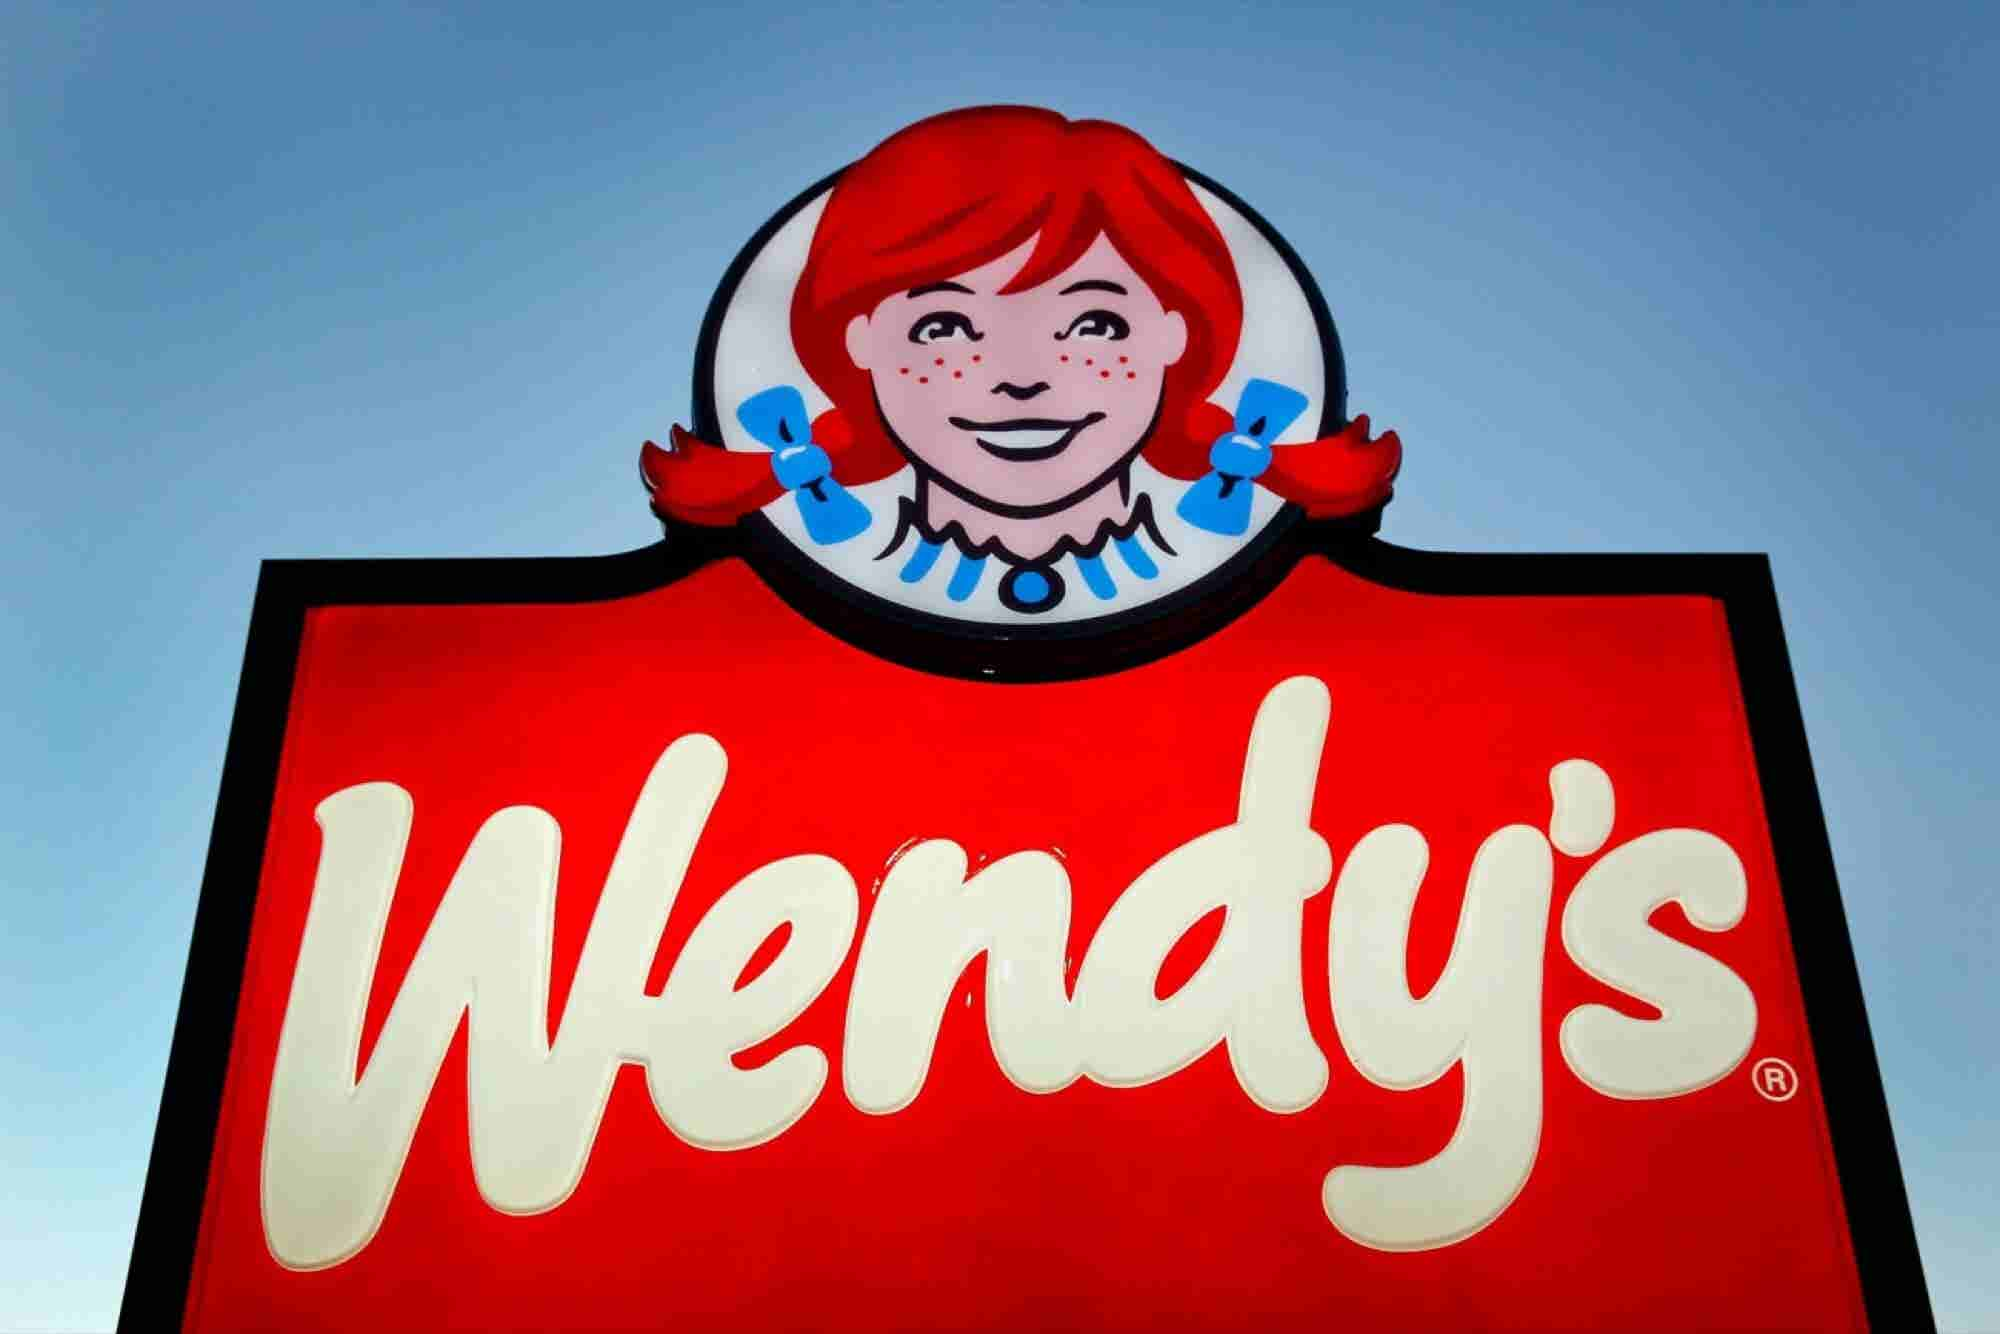 Wendy's Brings the Sass in 2017